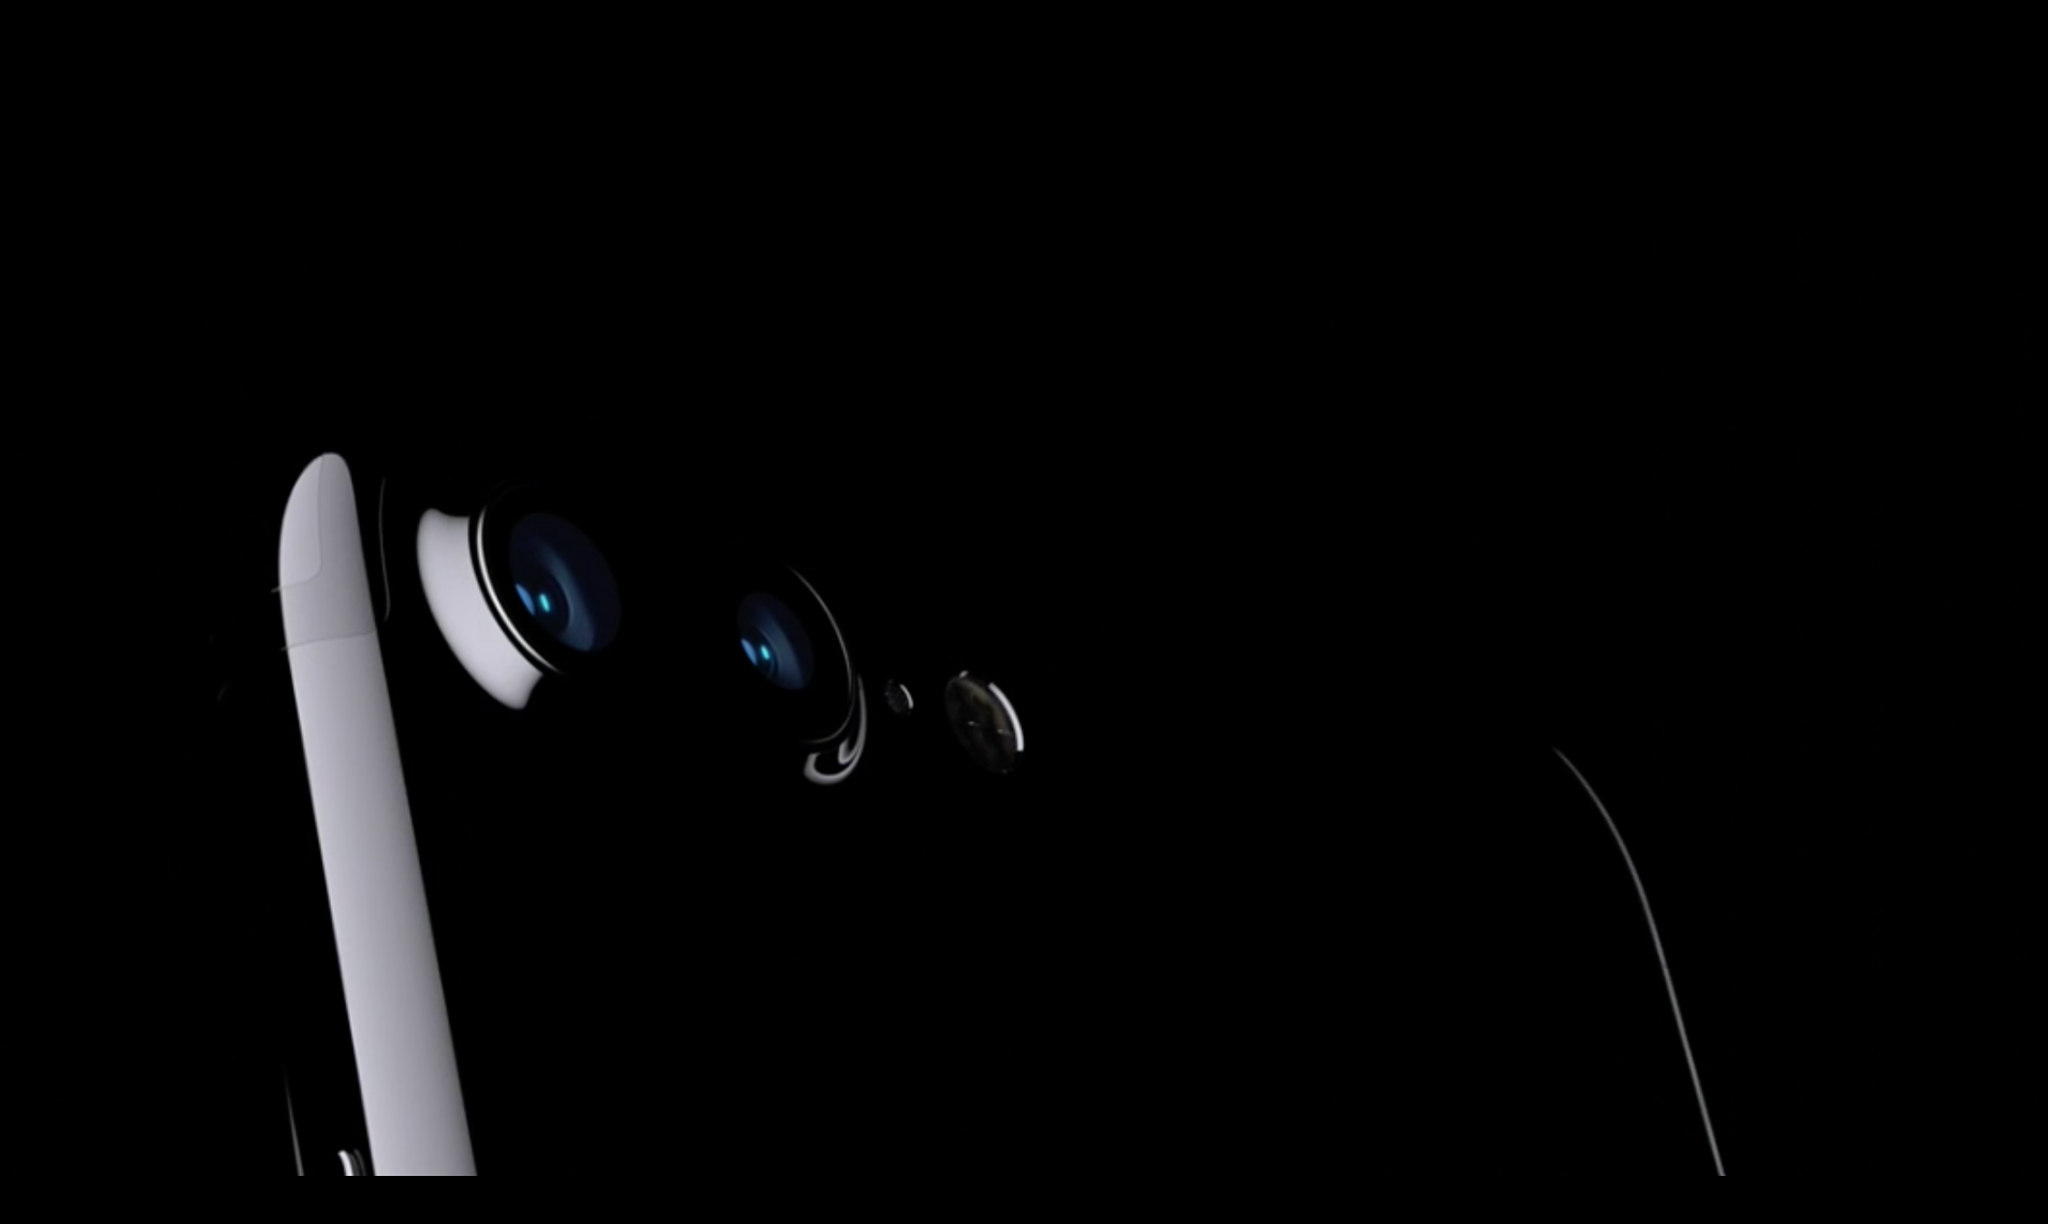 The Apple iPhone 7 Camera Boasts an f1.8 Lens